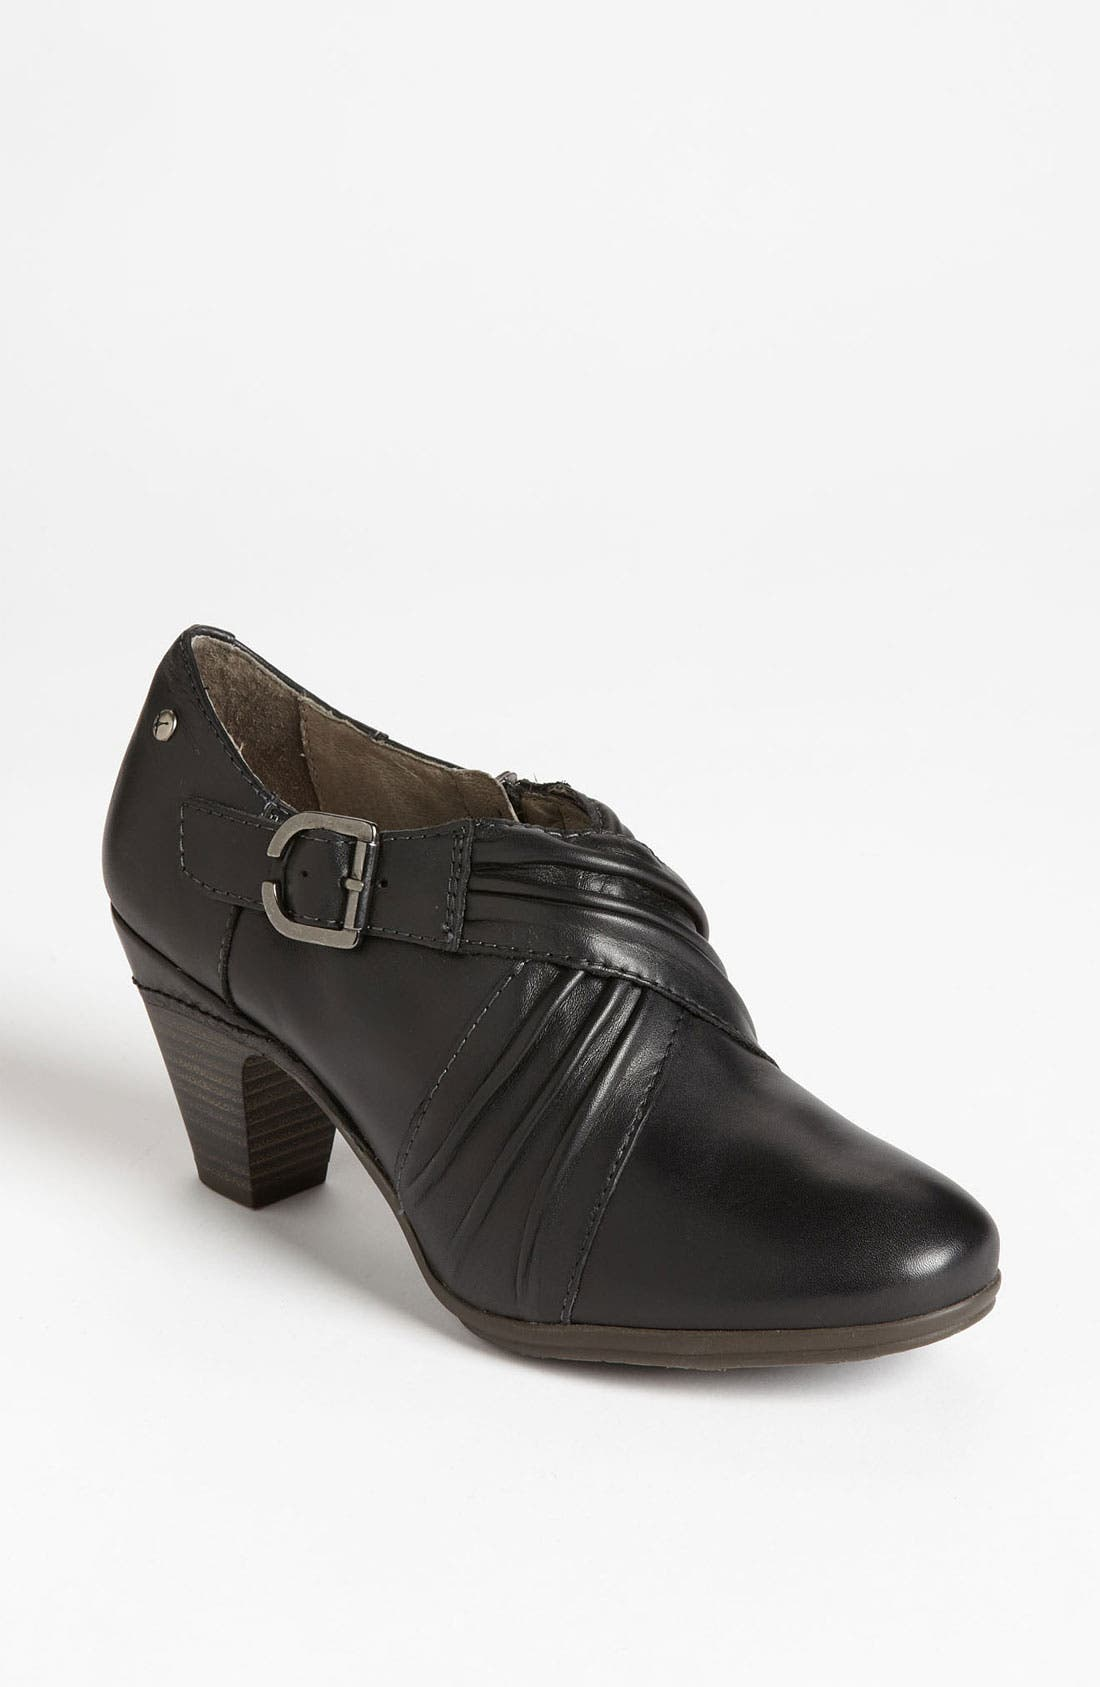 Alternate Image 1 Selected - PIKOLINOS 'Parma' Bootie